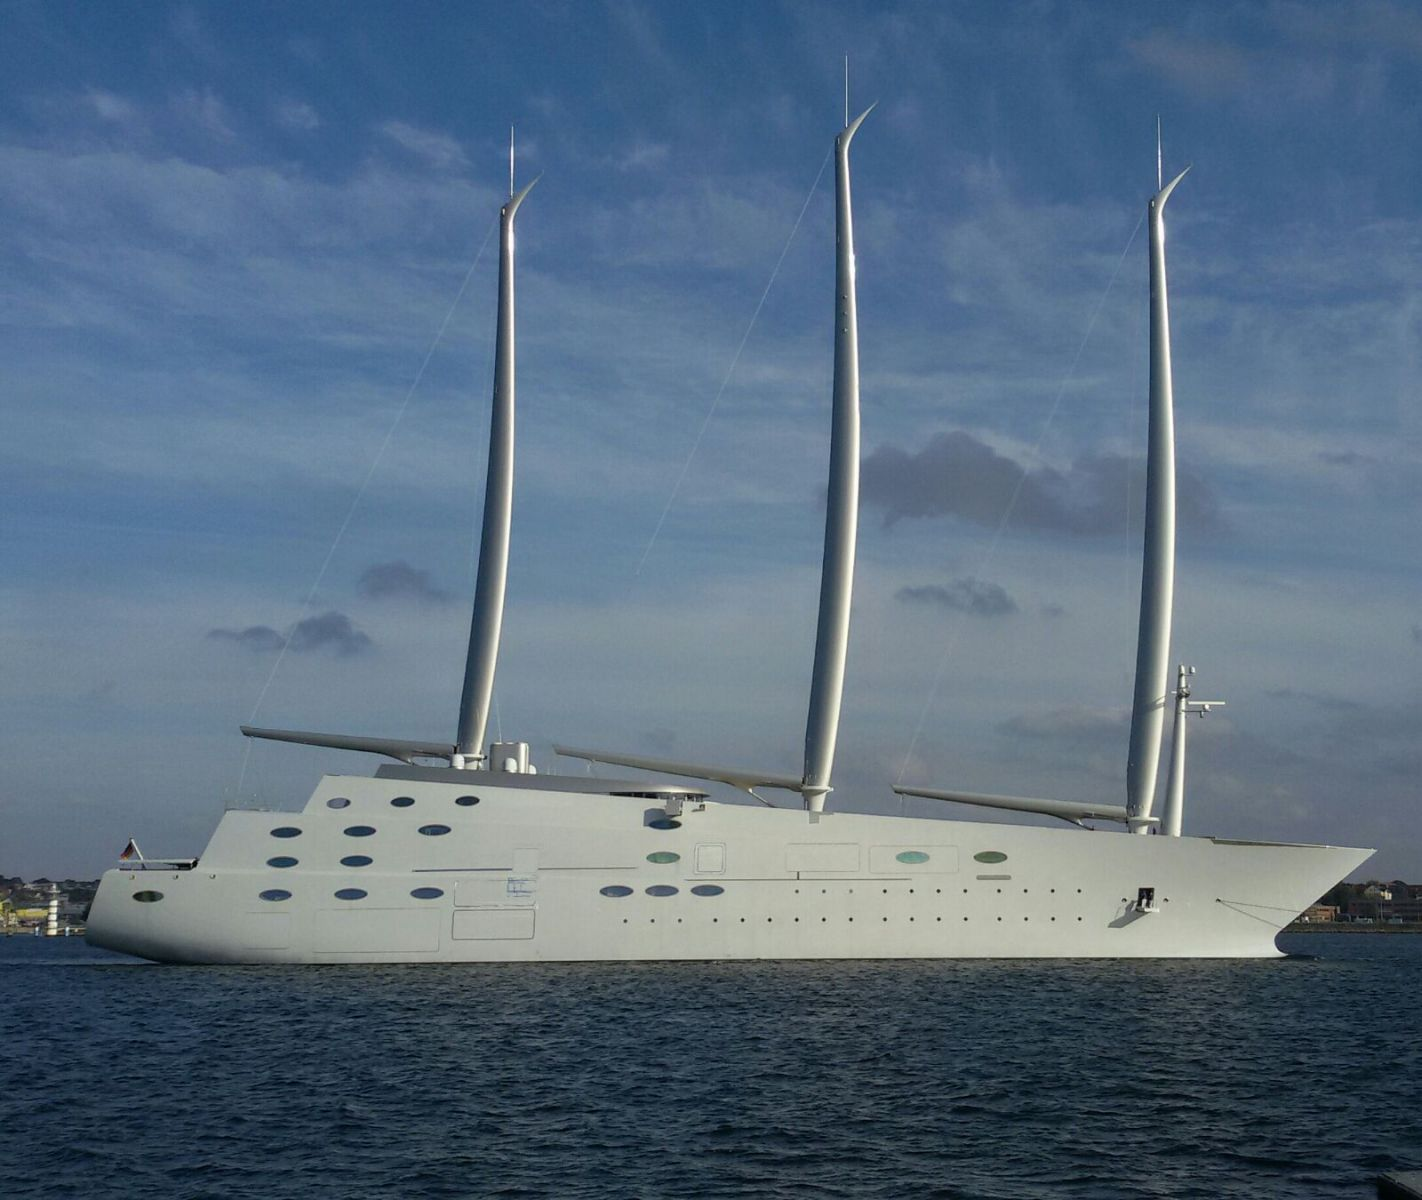 World's Largest Sailing Yacht Arrested in Gibraltar